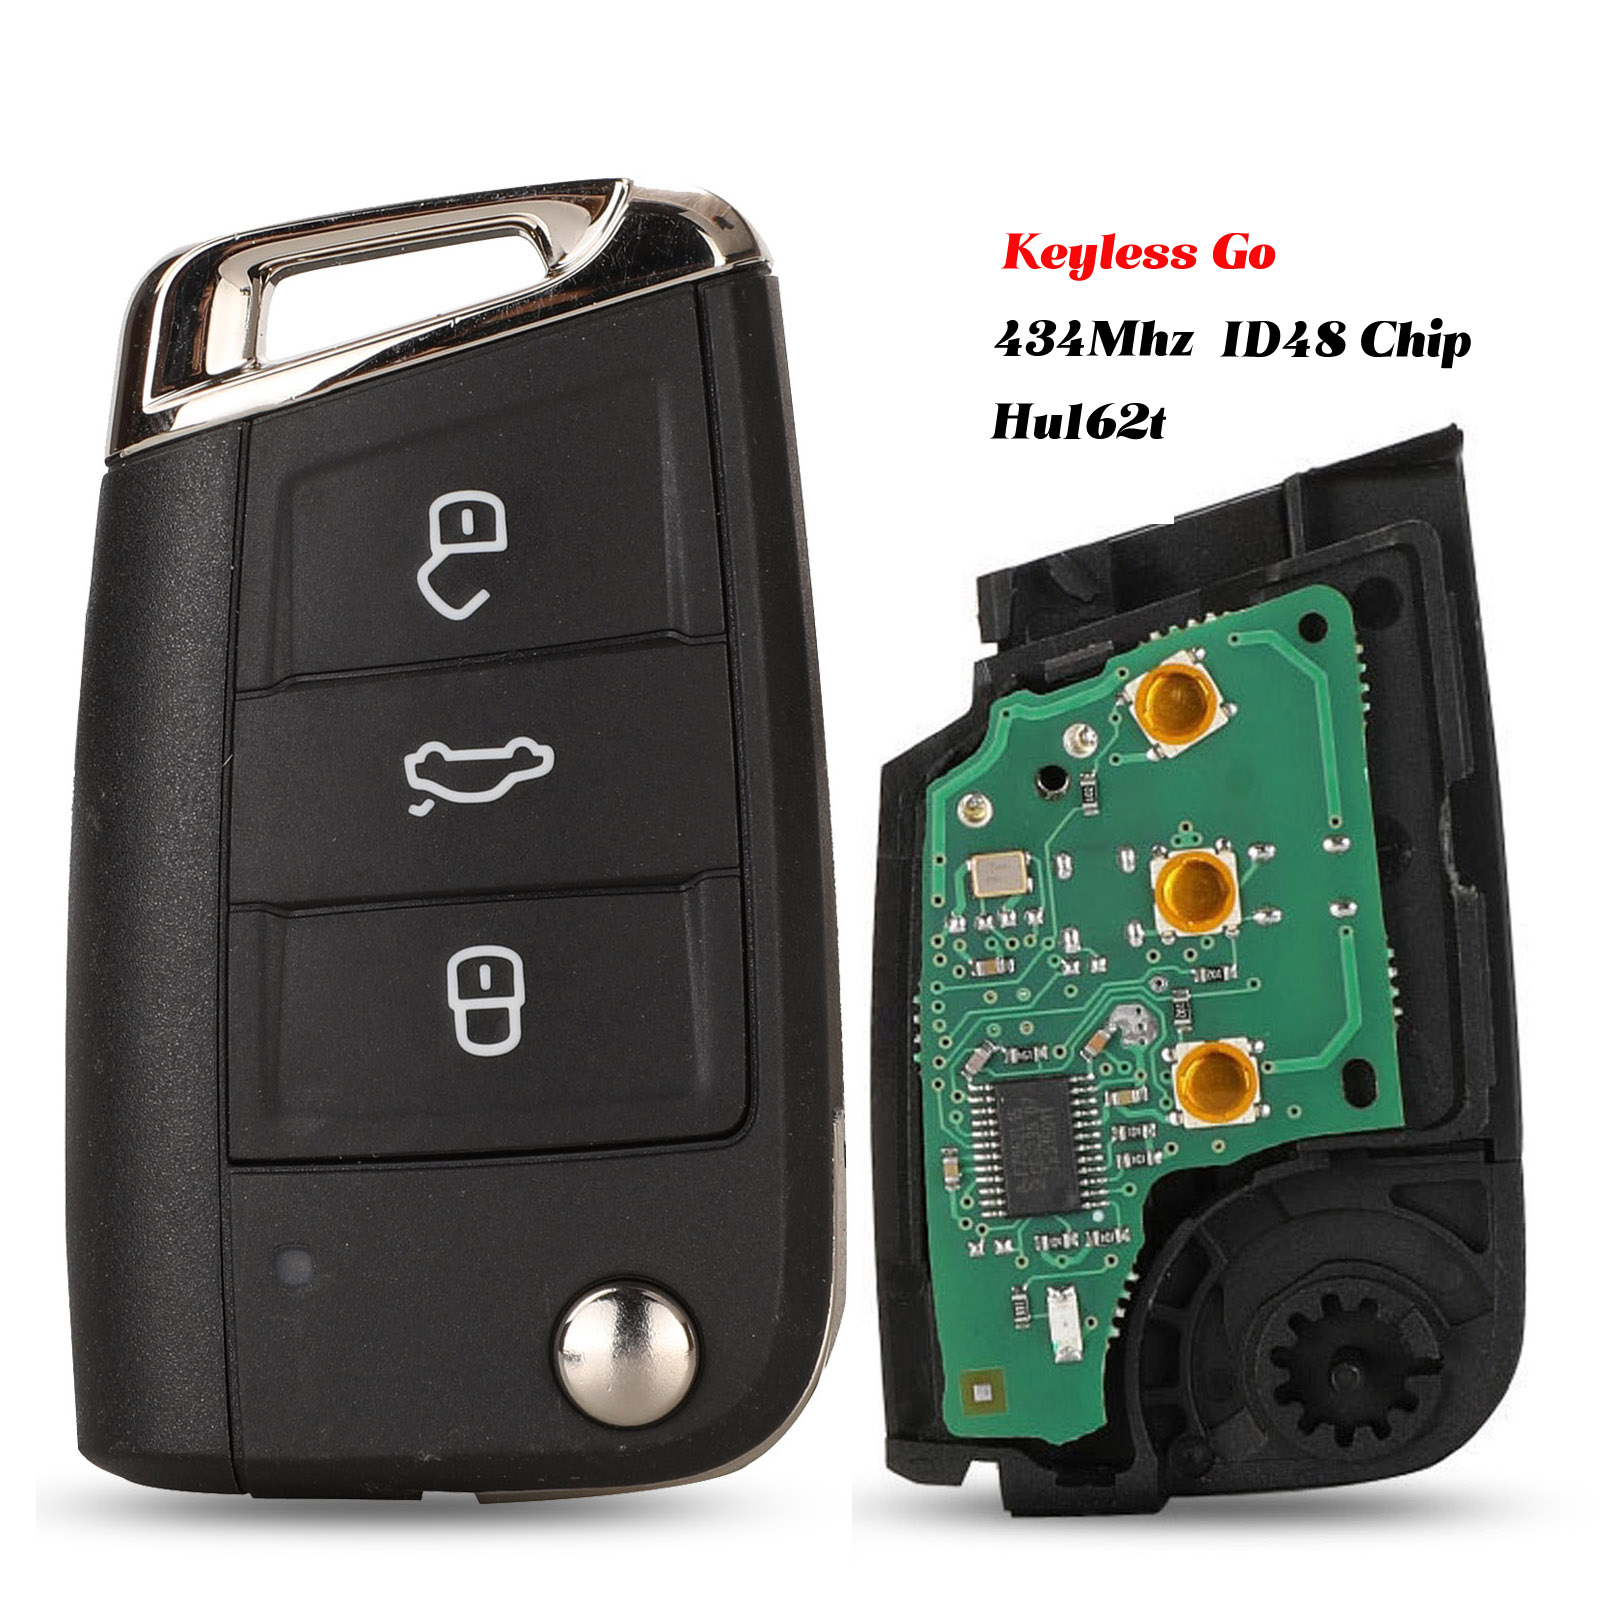 jingyuqin Keyless-go/Half Smart Option <font><b>Remote</b></font> <font><b>Key</b></font> 434MHz MQB ID48 For VW Seat <font><b>Golf</b></font> <font><b>7</b></font> MK7 Touran Polo Tiguan 5G6959752AB BB image